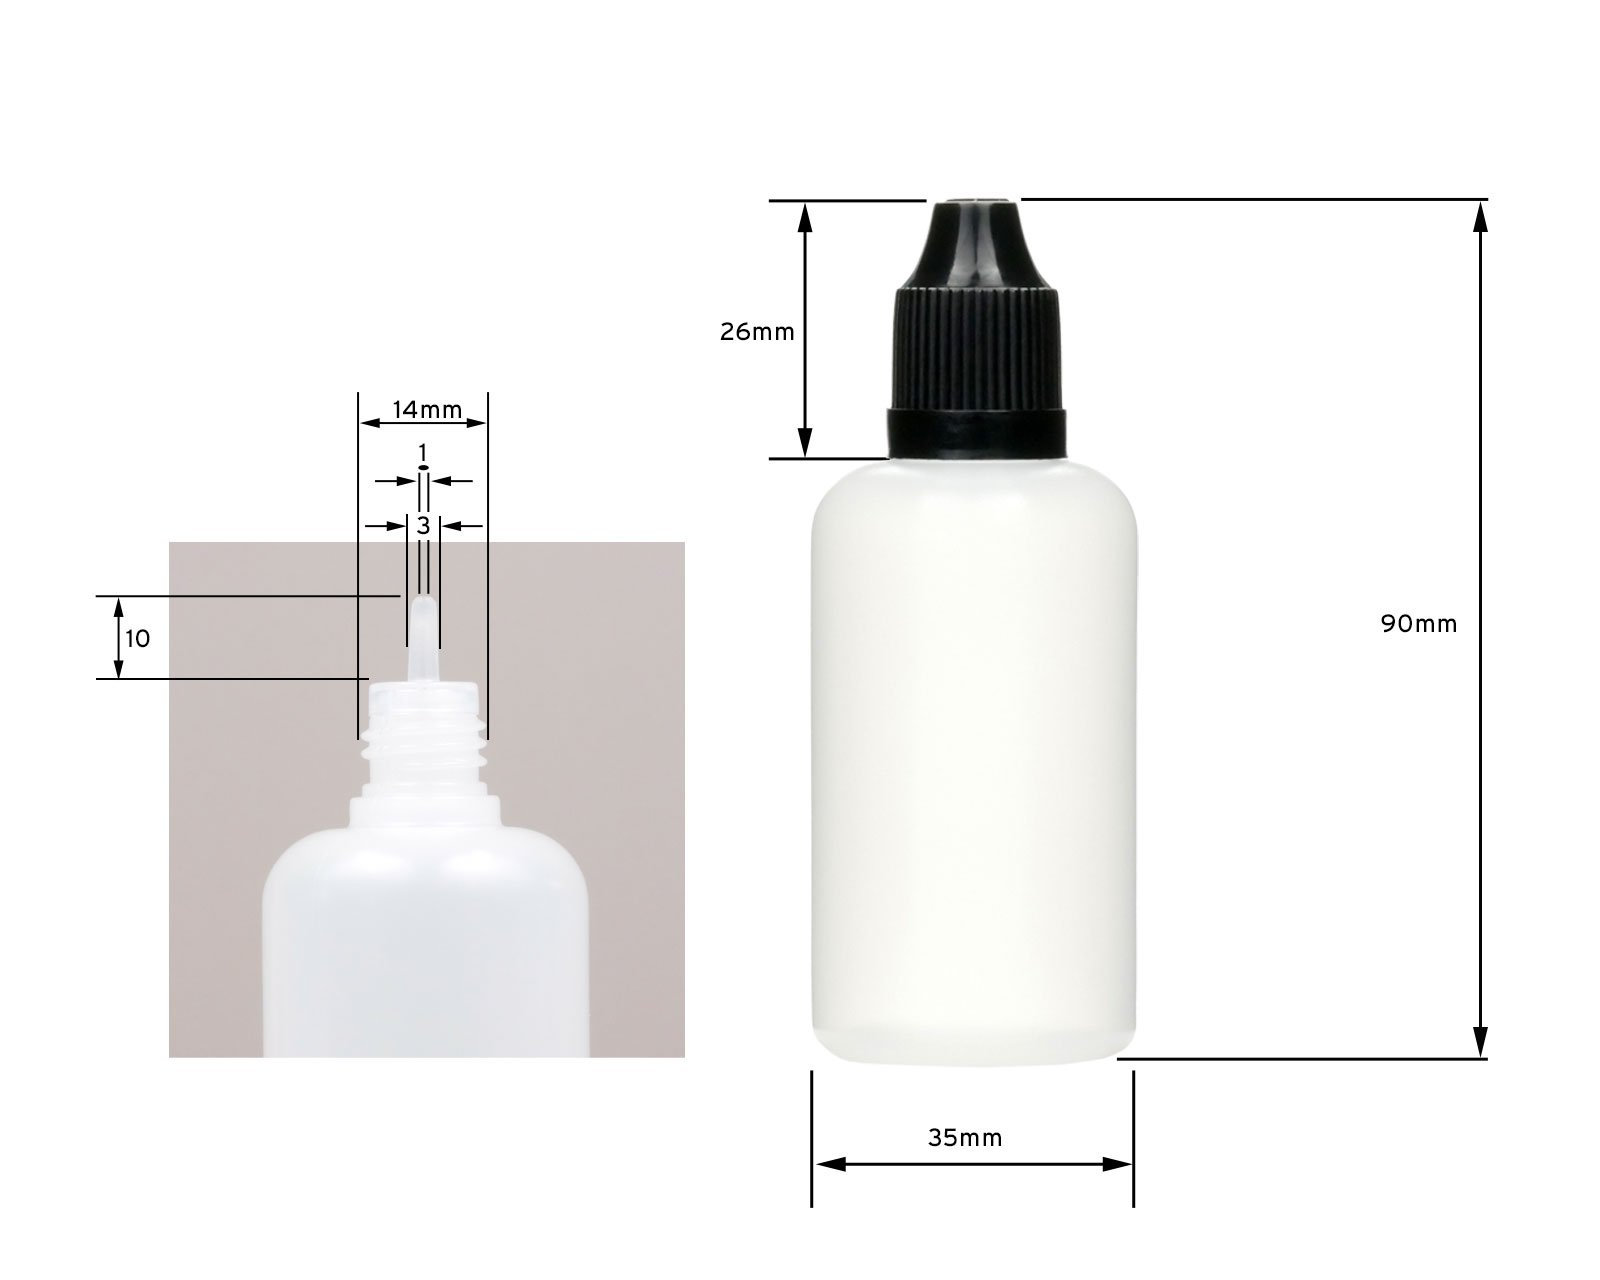 10 x 50 ml liquid bottles with funnels + labels: for e-liquids, e-cigarettes, plastic bottles made of PE LDPE, dosing bottles, dropping bottles or squeeze bottles + white lids with child safety lock 5